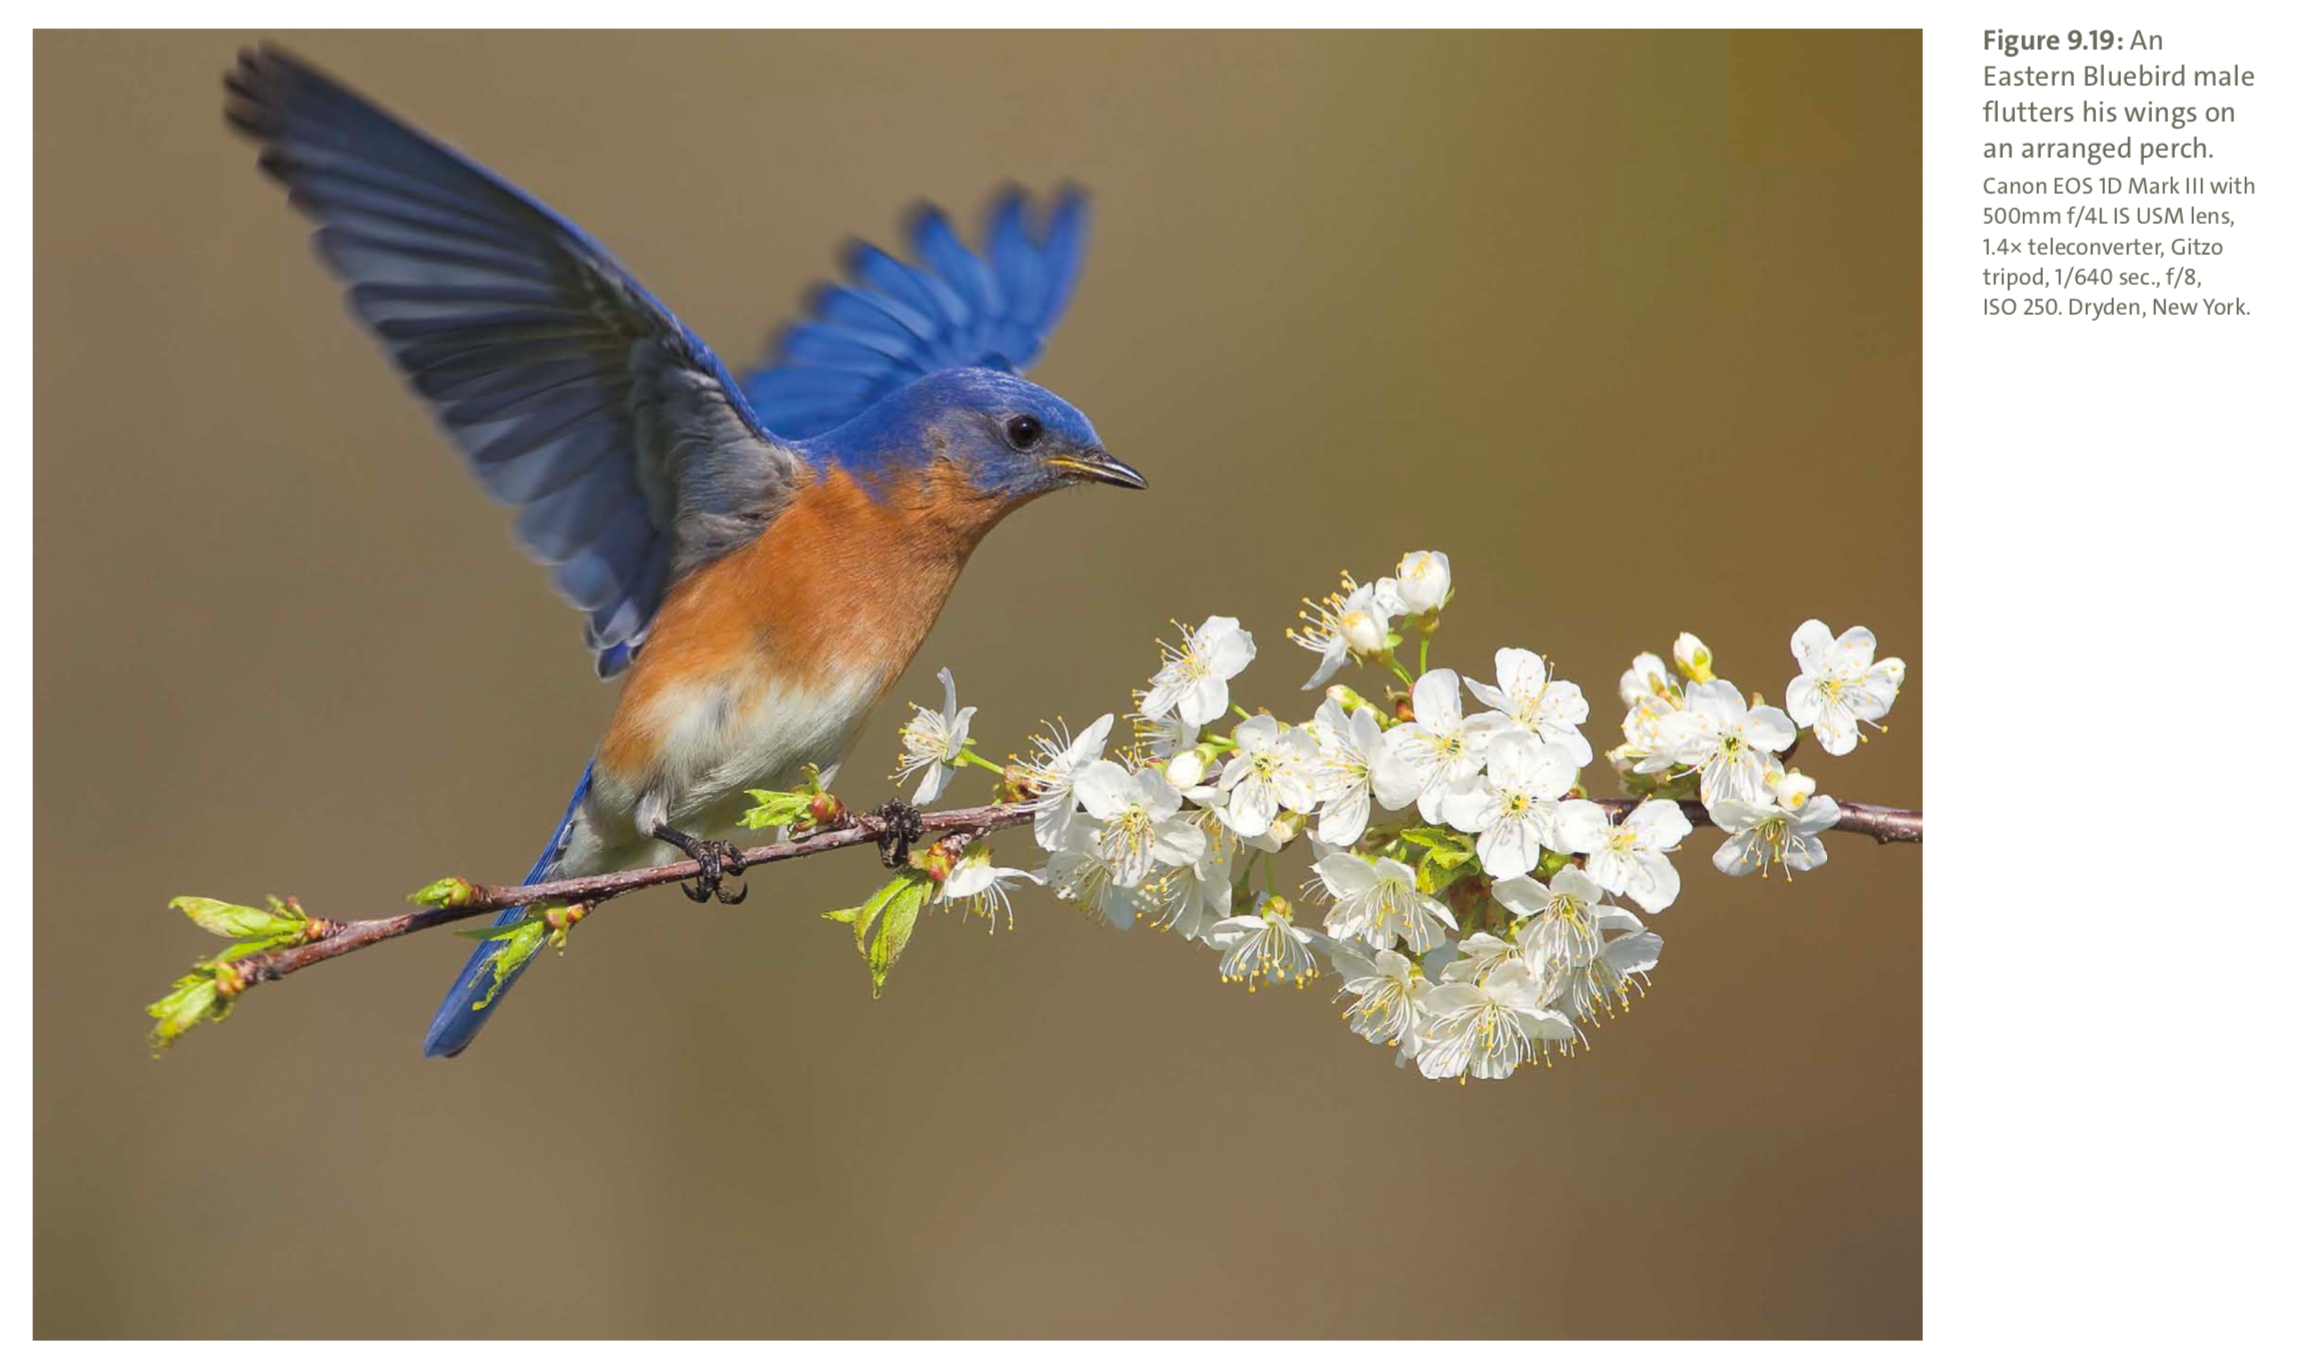 Figure 9.19 from Mastering Bird Photography  Photo: Marie Read